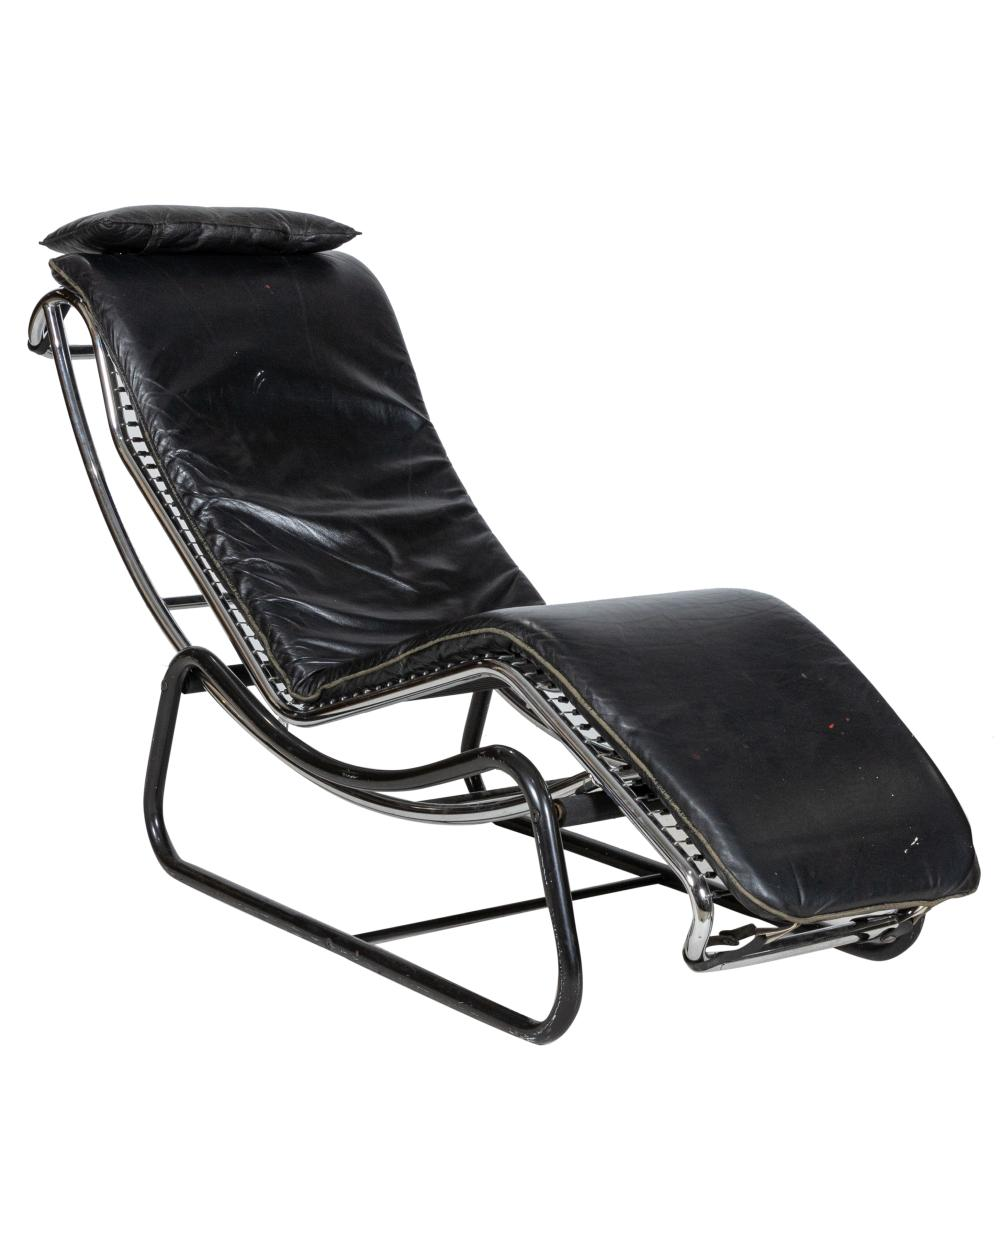 Chaise Lounge Styles: Corbusier Style Chaise Lounge